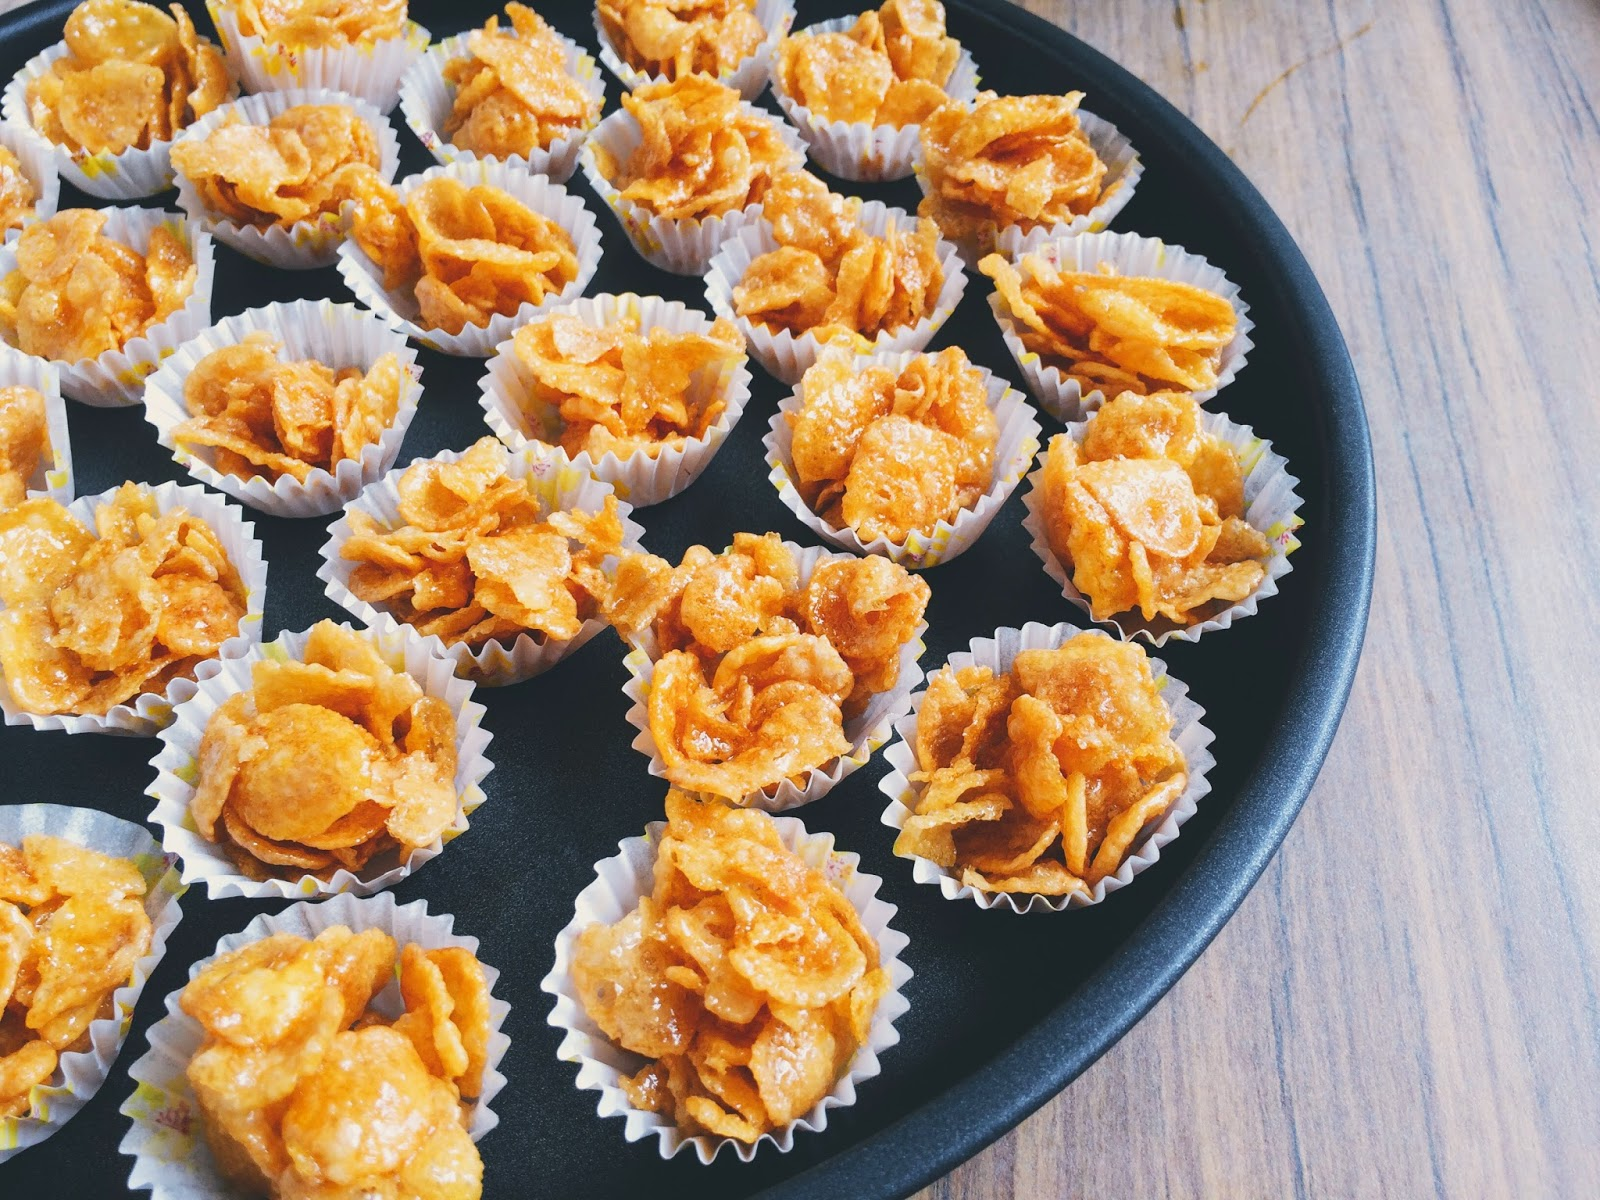 Who else likes honey cornflakes?